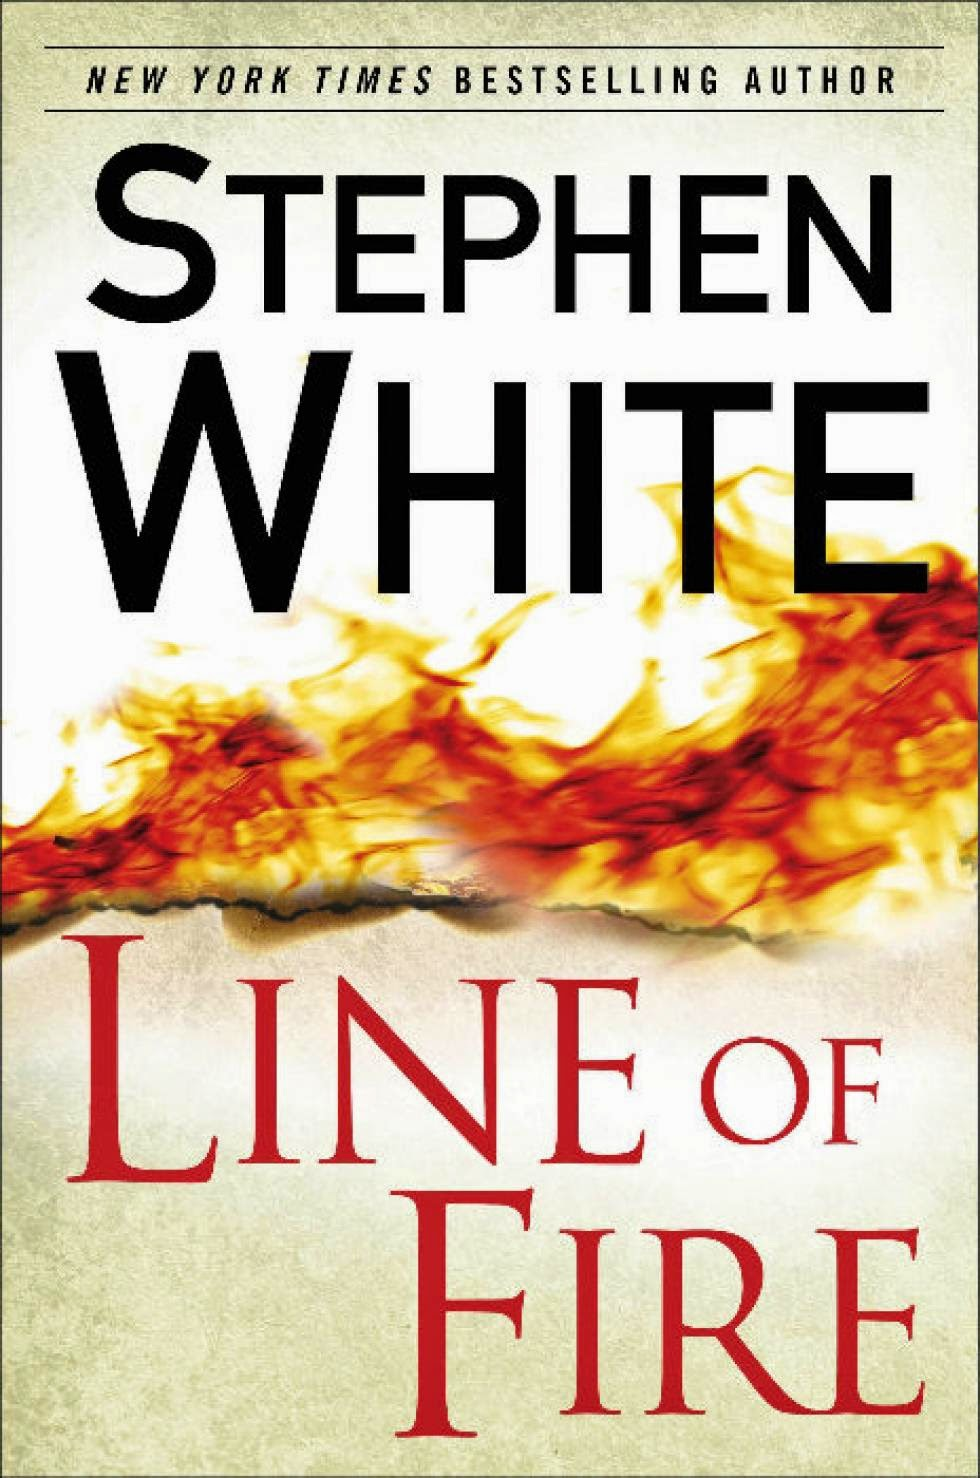 http://discover.halifaxpubliclibraries.ca/?q=title:line%20of%20fire%20author:white